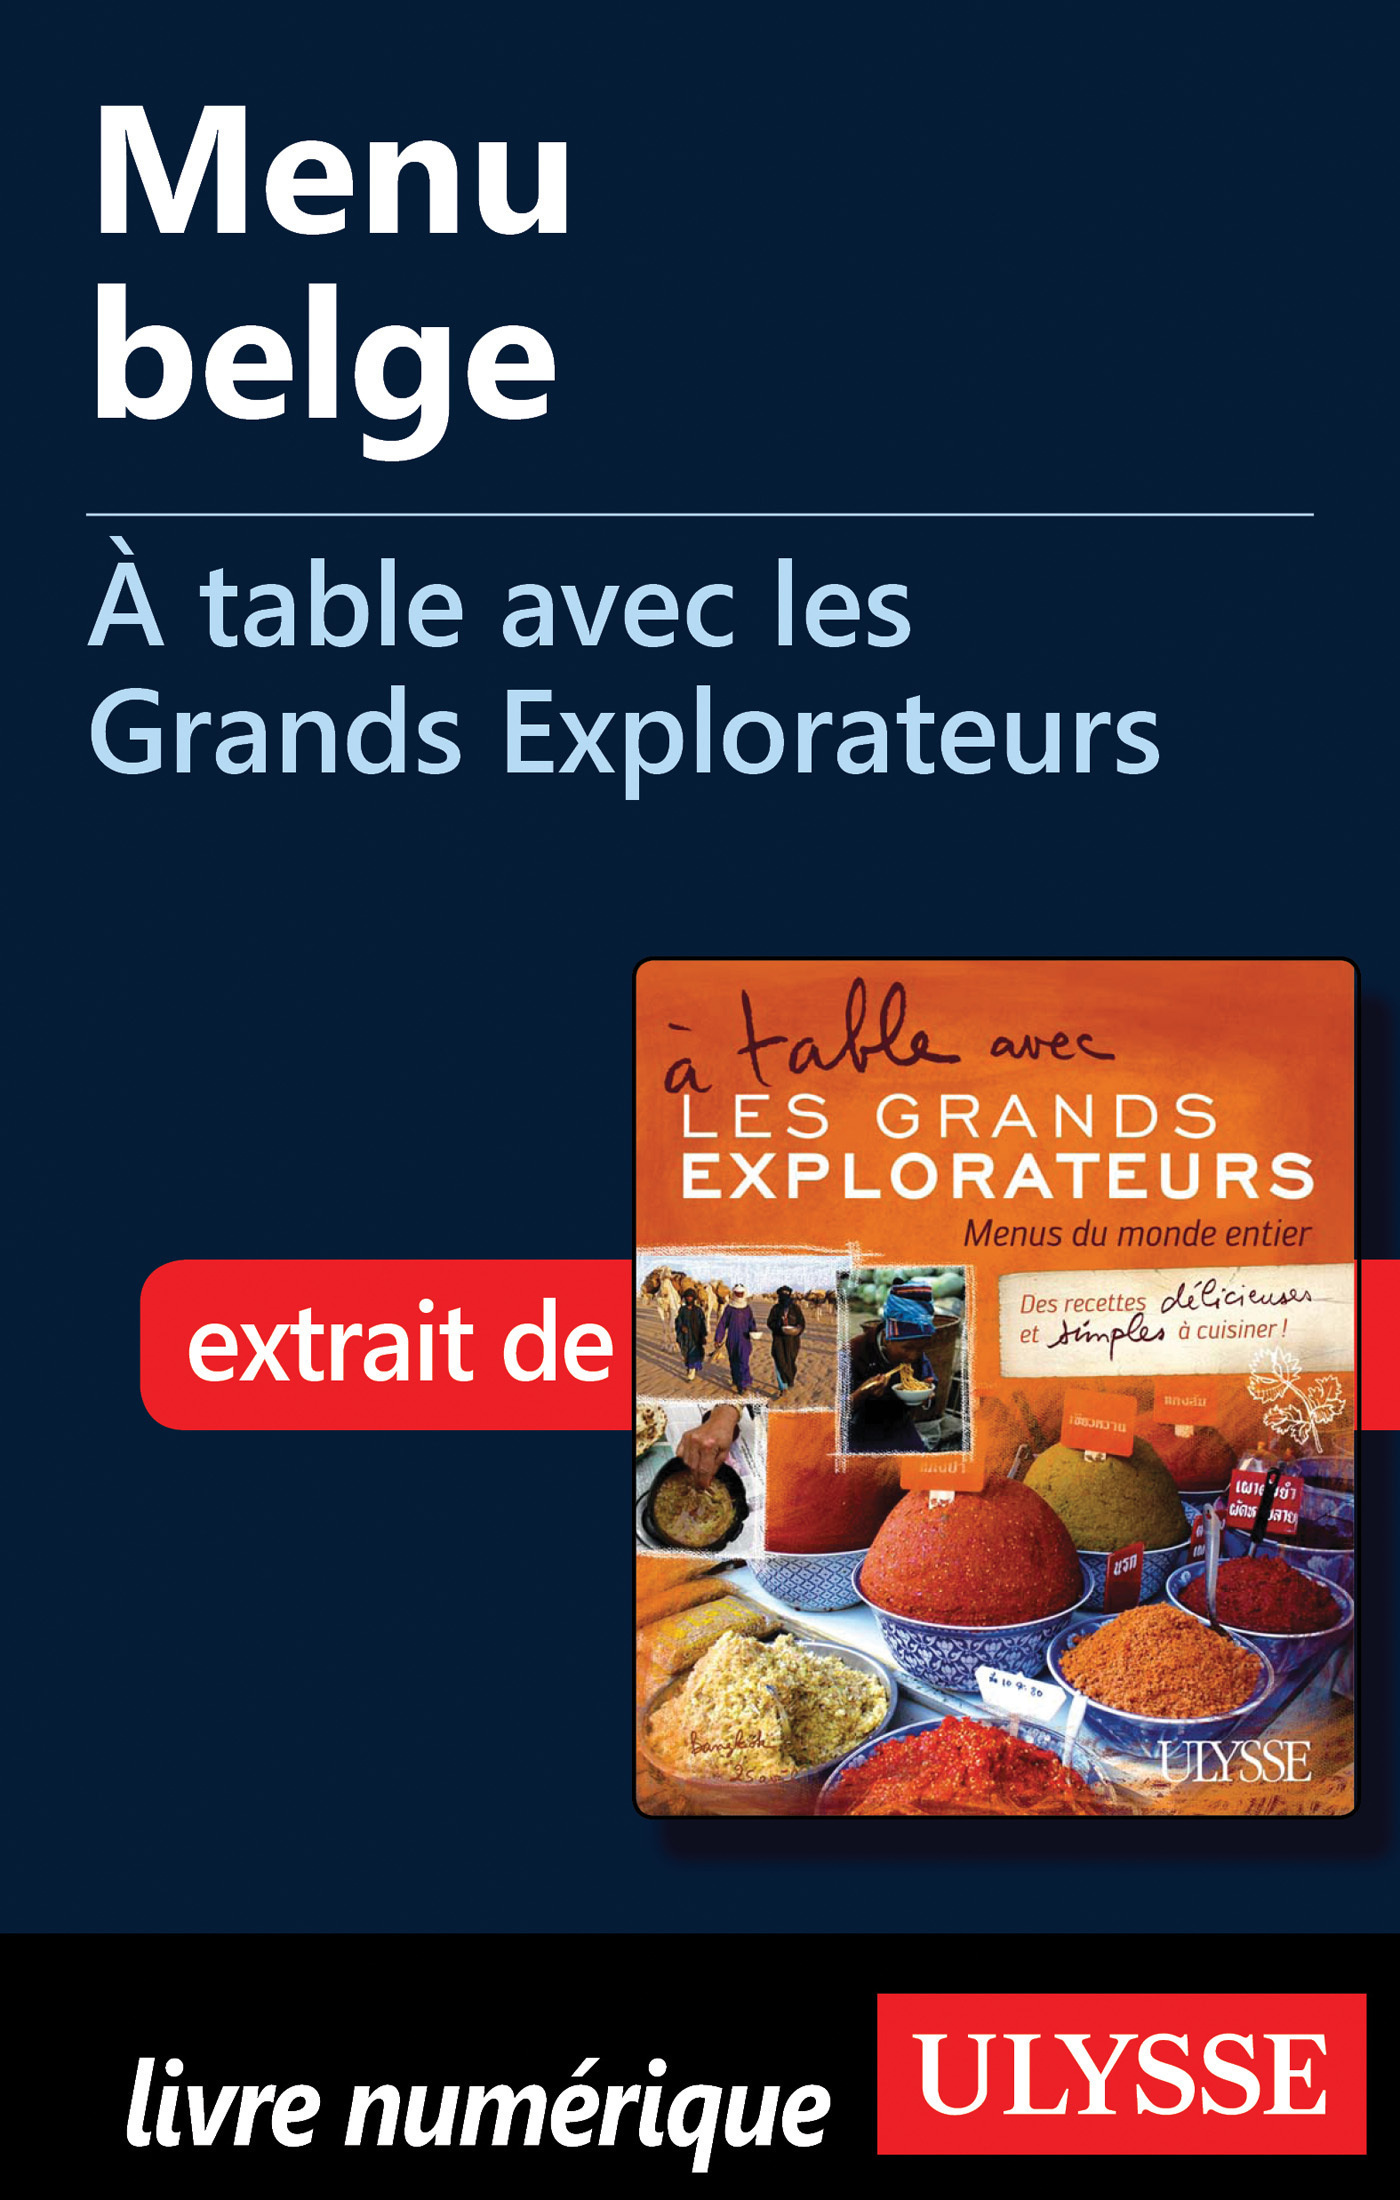 Menu belge - A table avec les Grands Explorateurs